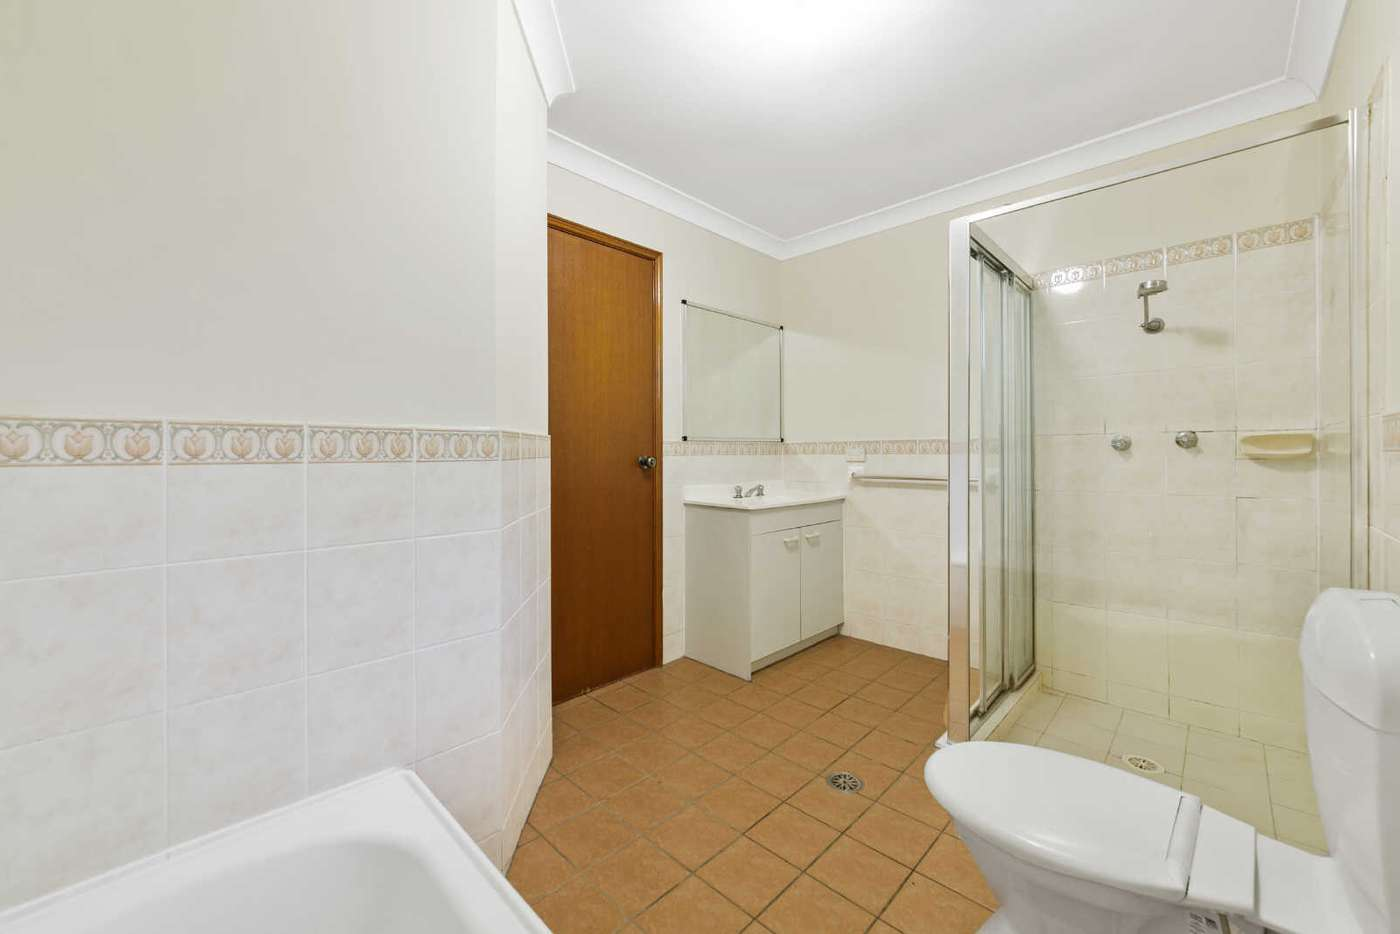 Sixth view of Homely townhouse listing, 3/104 -106 Metella Road, Toongabbie NSW 2146